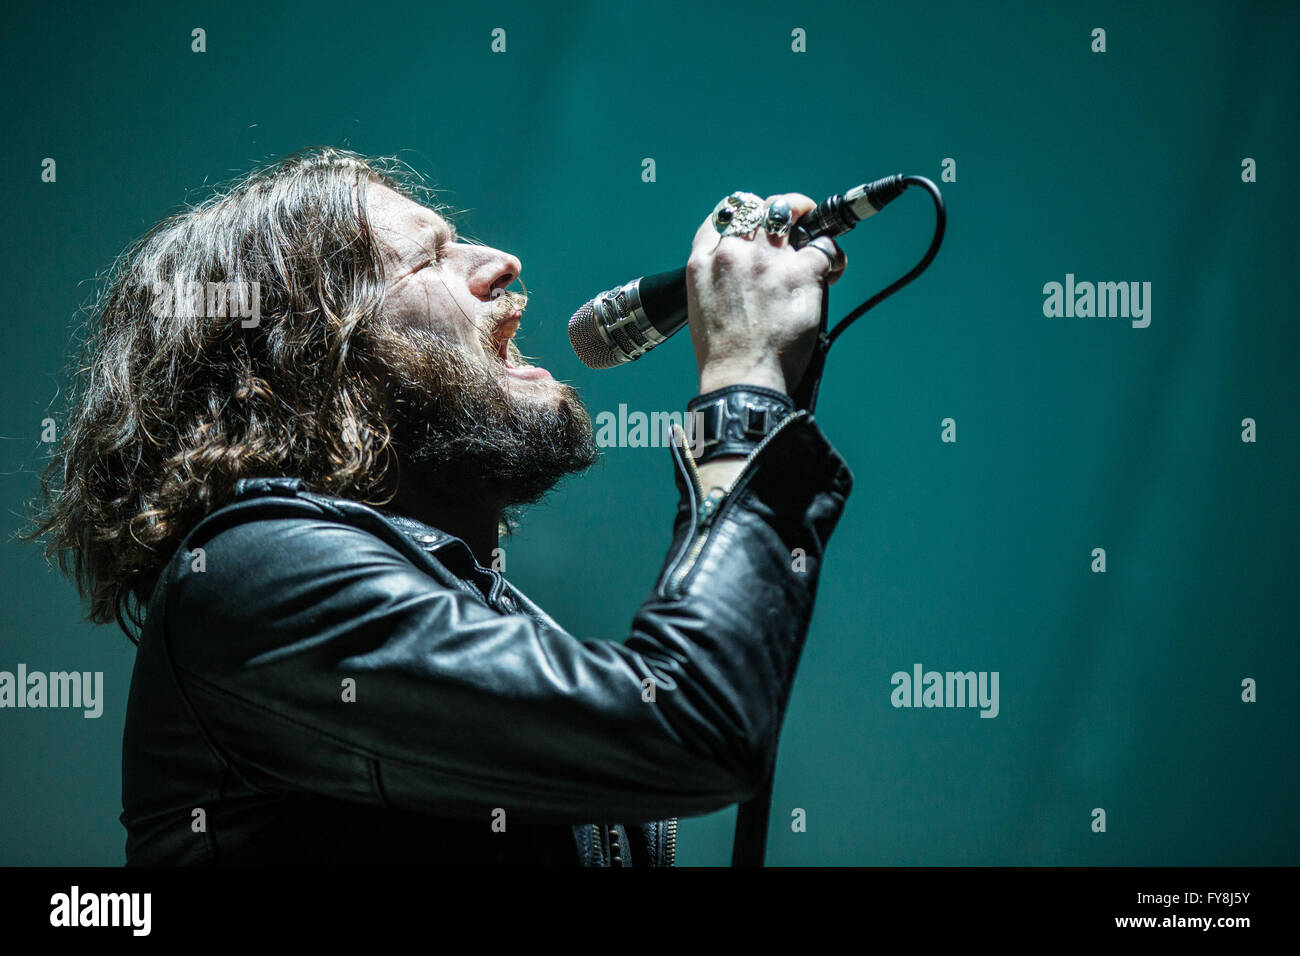 Jay Buchanan of Rival Sons @ Rogers Arena in Vancouver, BC on March 7th 2016 - Stock Image